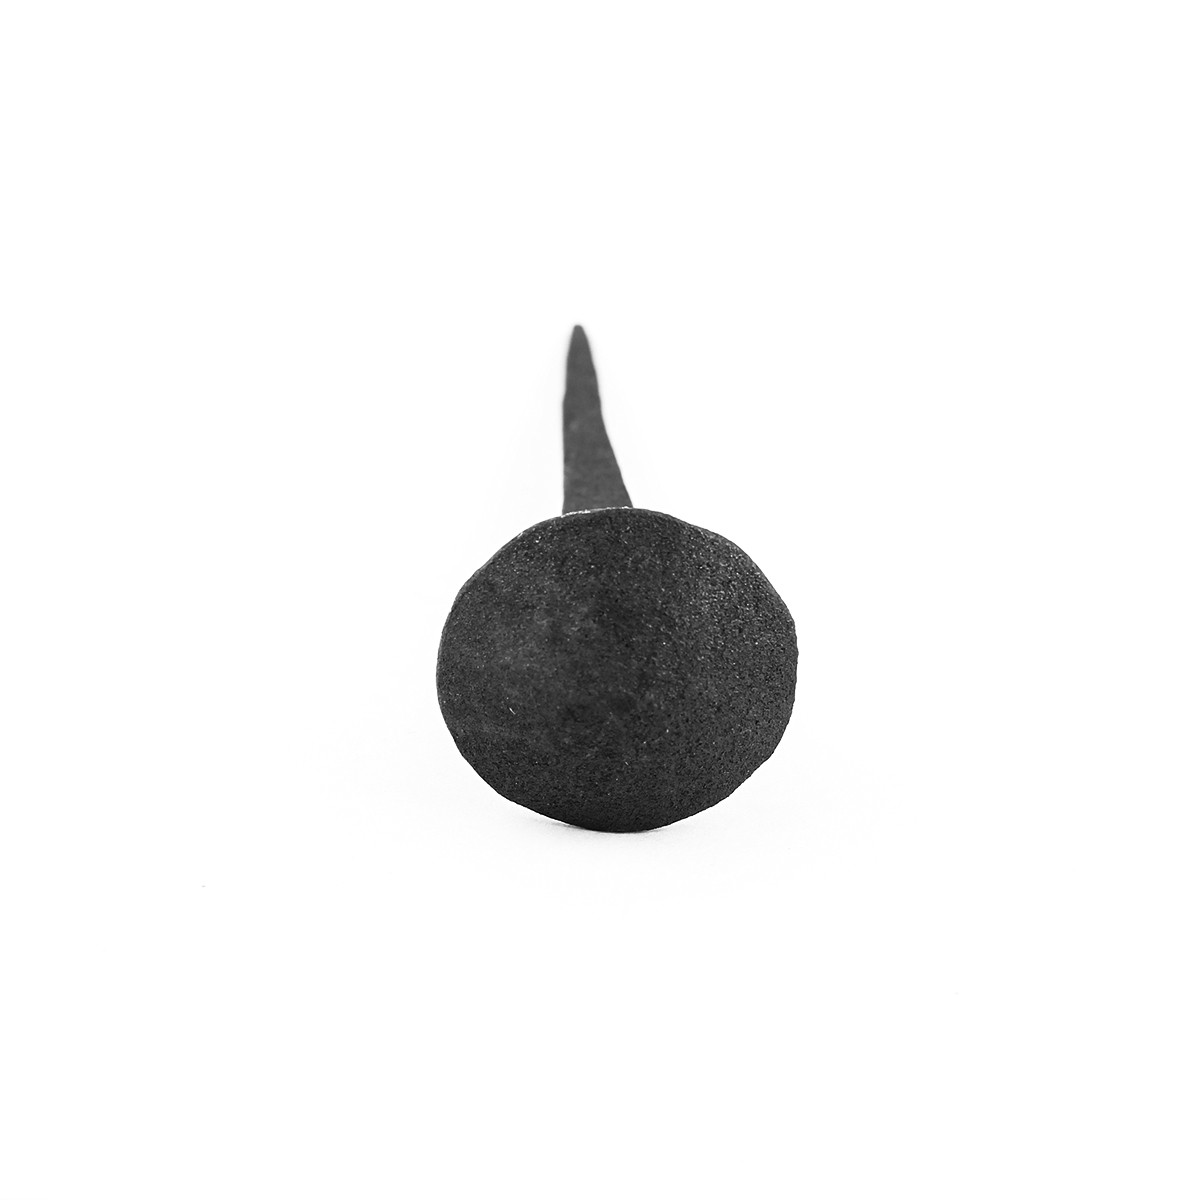 Clavos Iron Nails Square Black Wrought Iron Nails 4 14 X 1 1 Wrought Iron Nails Clavos Decorative Nail Heads Decorative Nail Heads